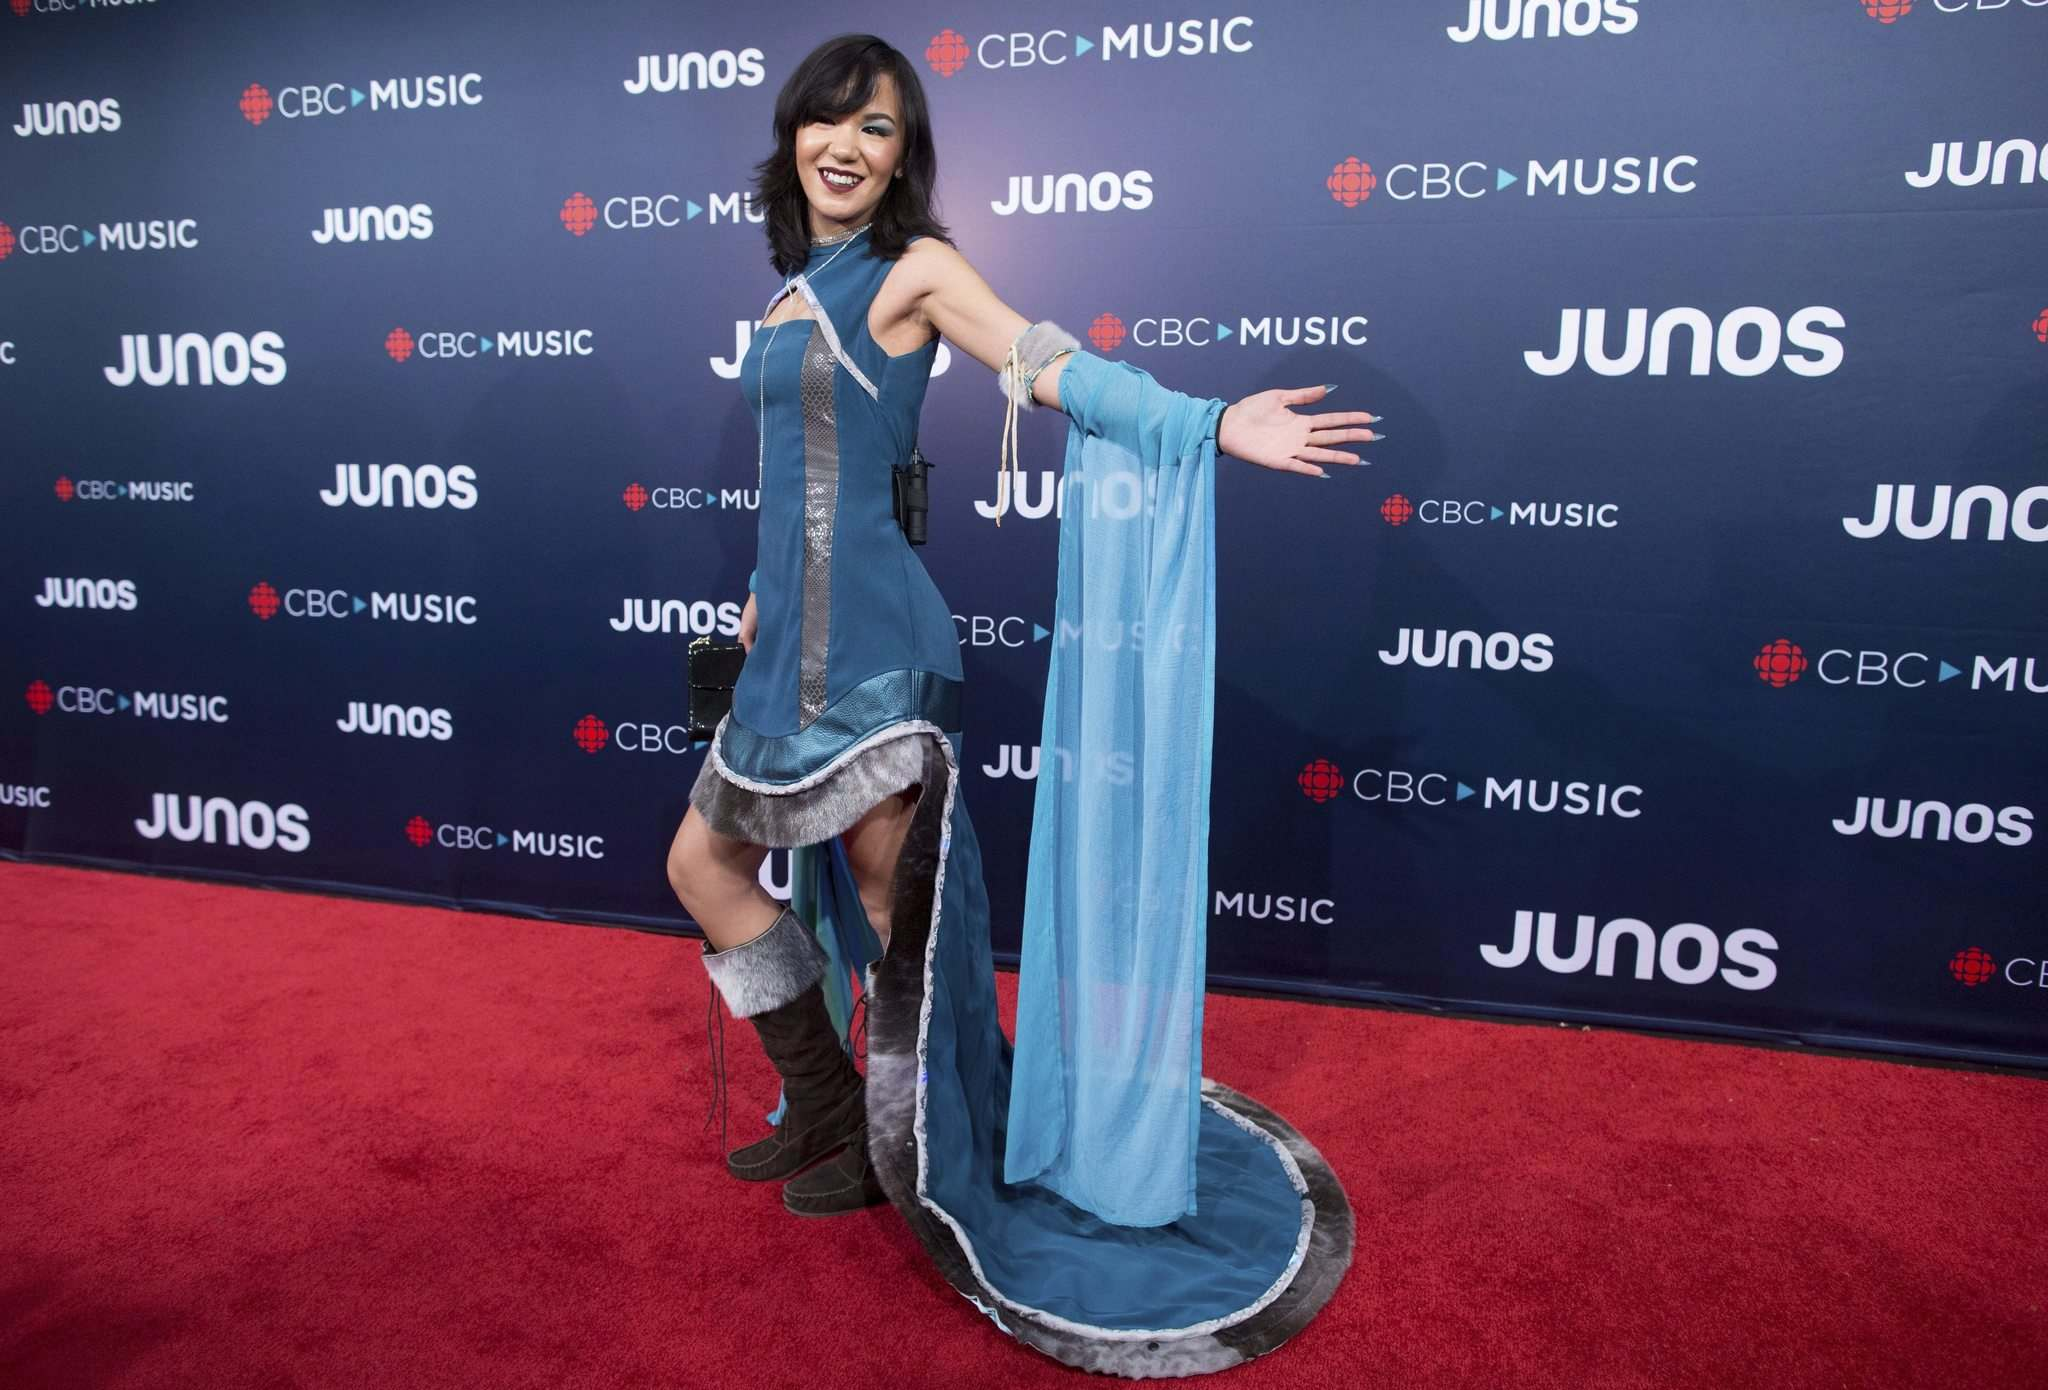 Kelly Fraser arrives on the red carpet at the Juno Awards in Vancouver on March, 25, 2018. The singer-songwriter has died at the age of 26. (Darryl Dyck / The Canadian Press files)